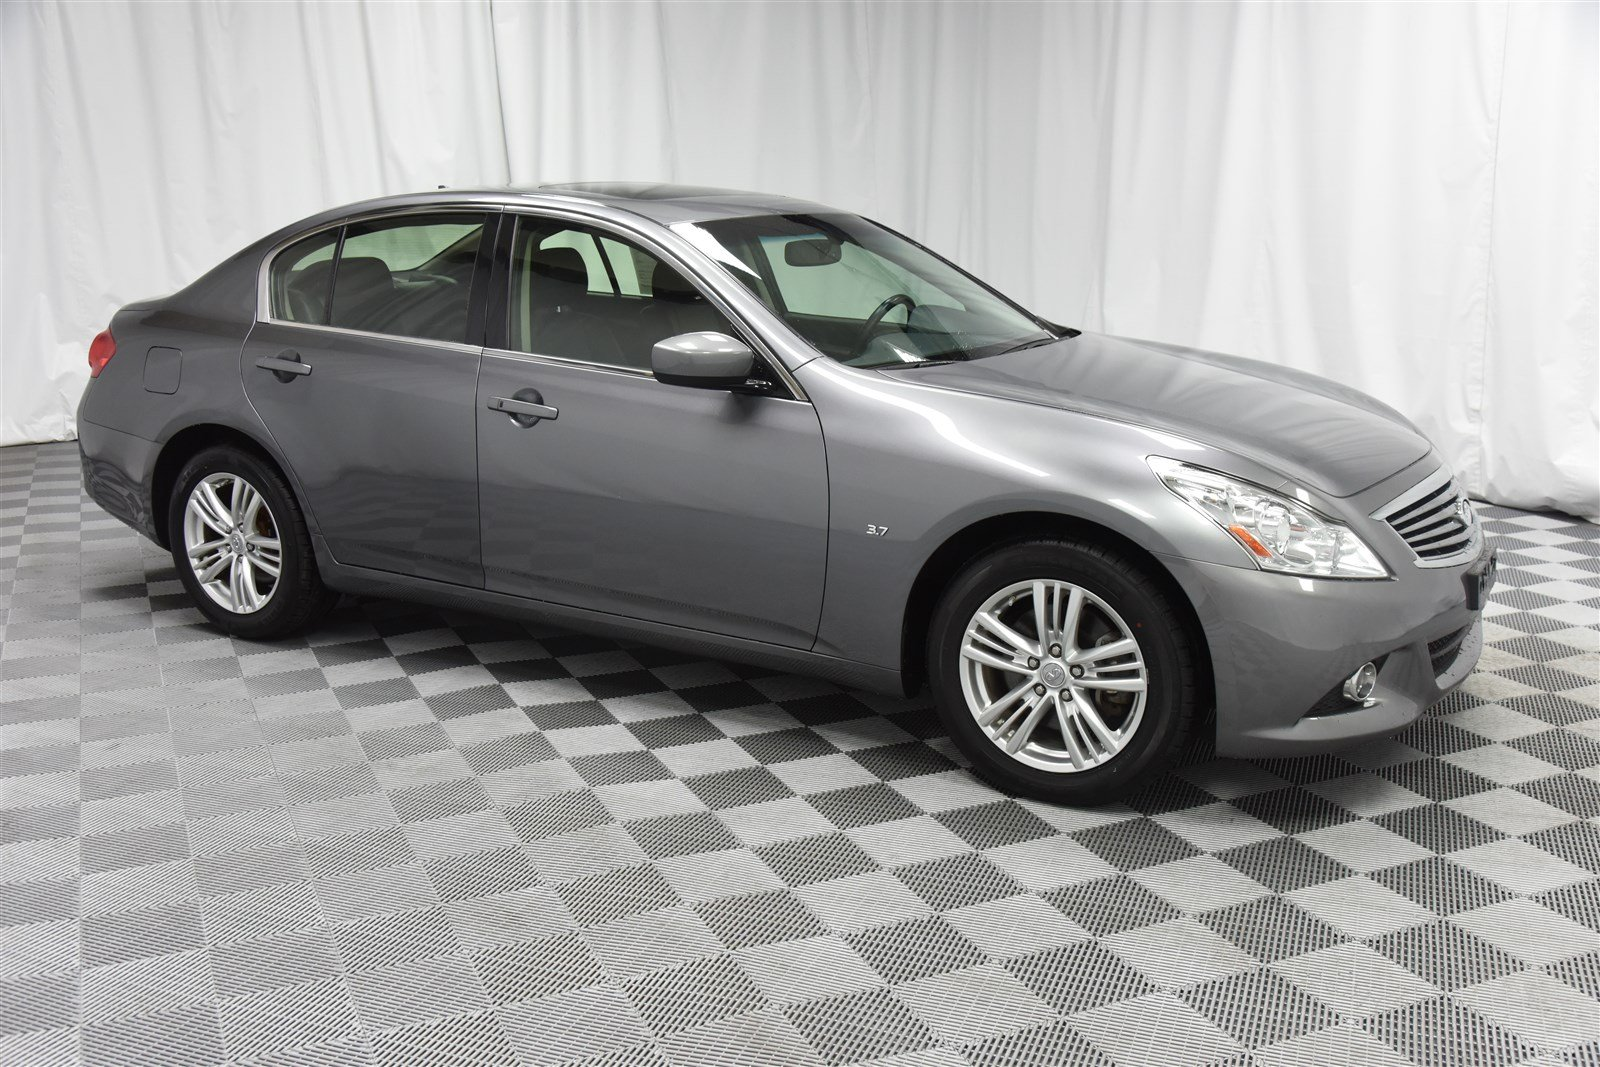 Pre-Owned 2015 INFINITI Q40 All-Wheel Drive